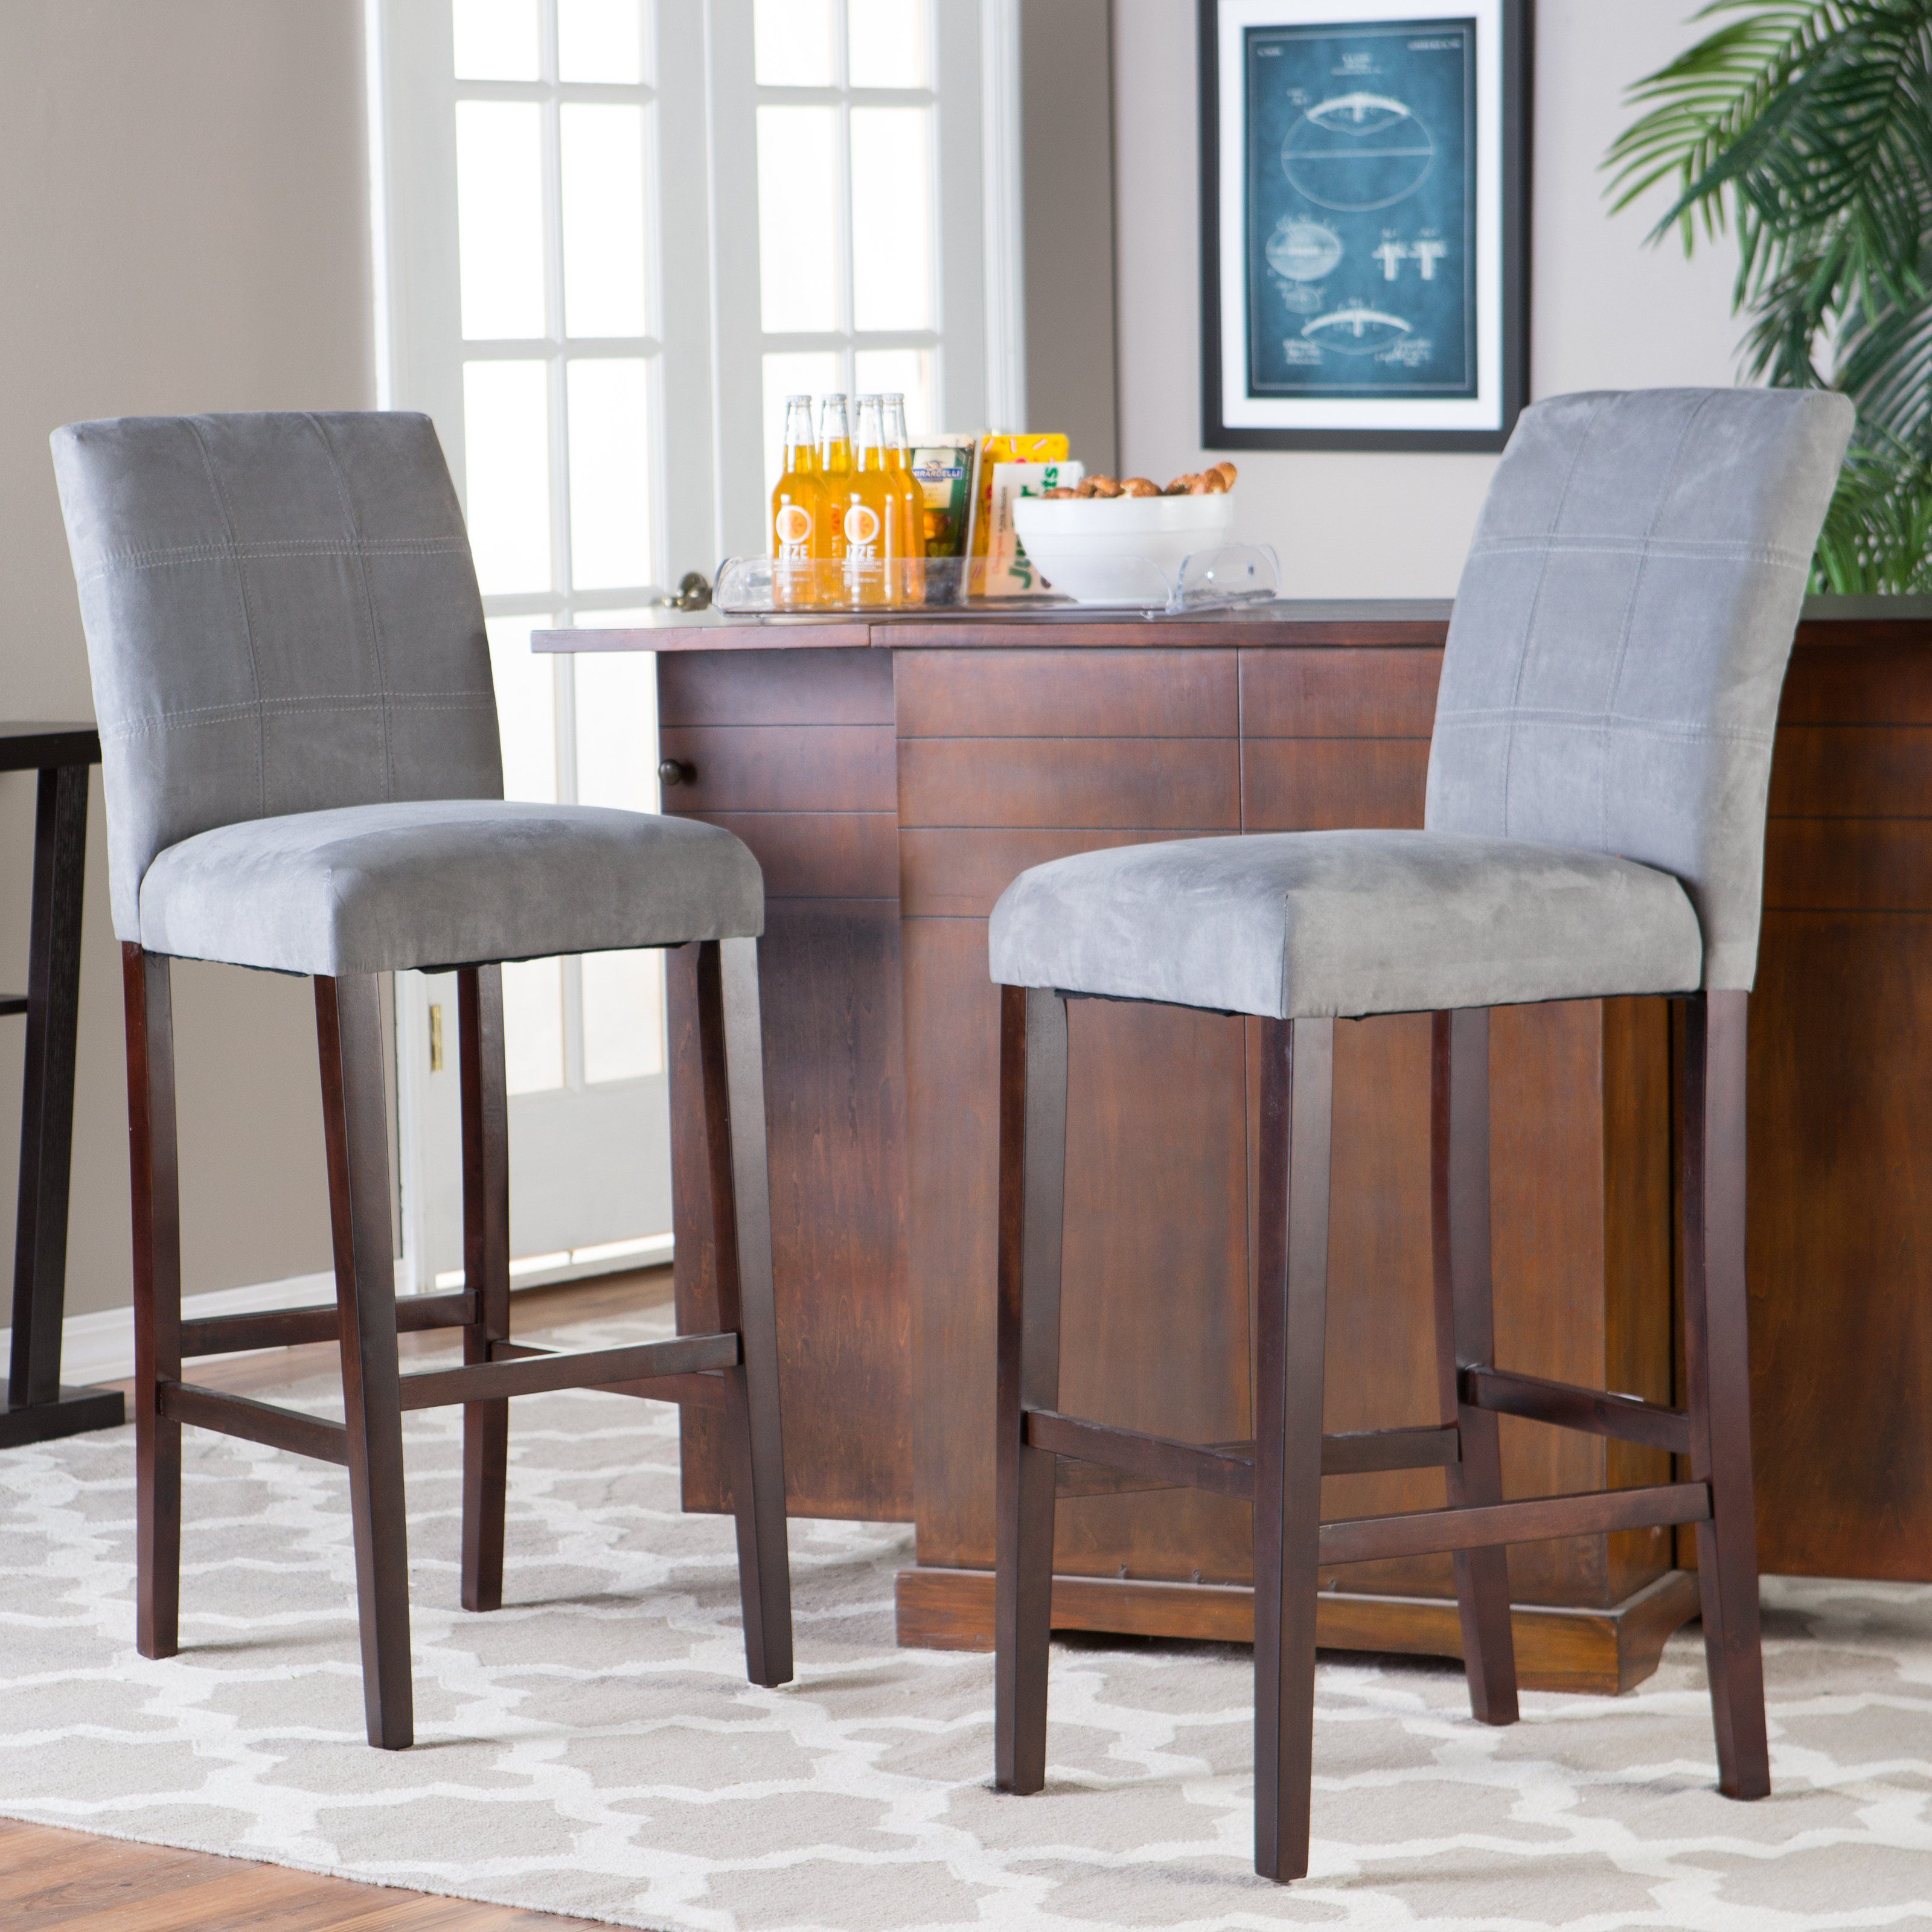 Palazzo Extra Tall Barstool Grey Set Of 2 Just Right For